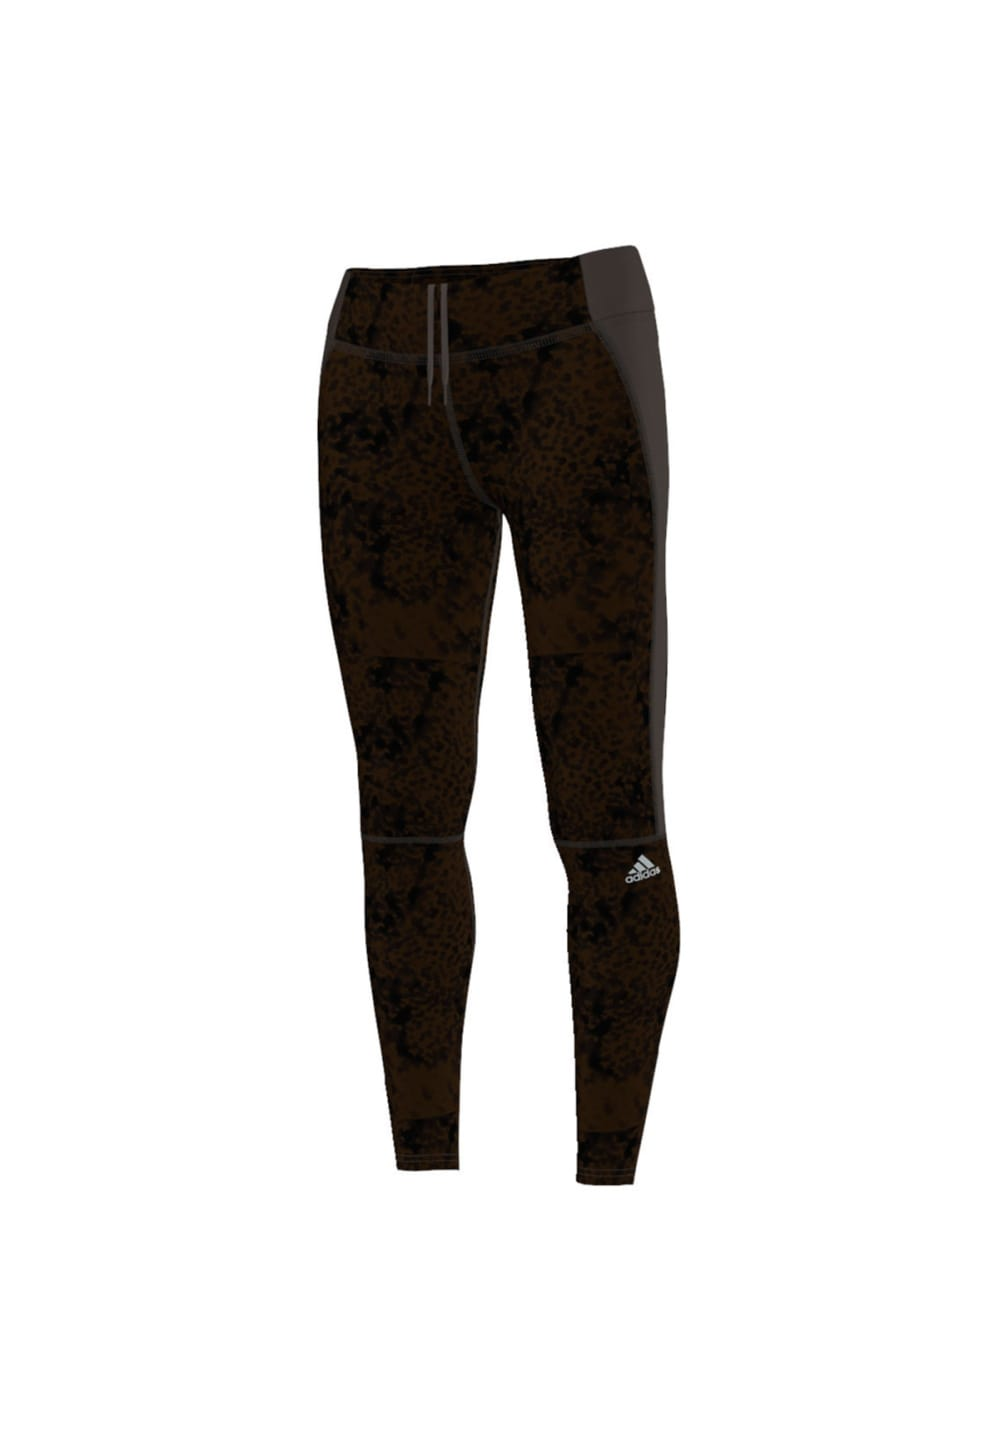 adidas Supernova Graphic Long Tight - Laufhosen für Damen - Schwarz, Gr. L